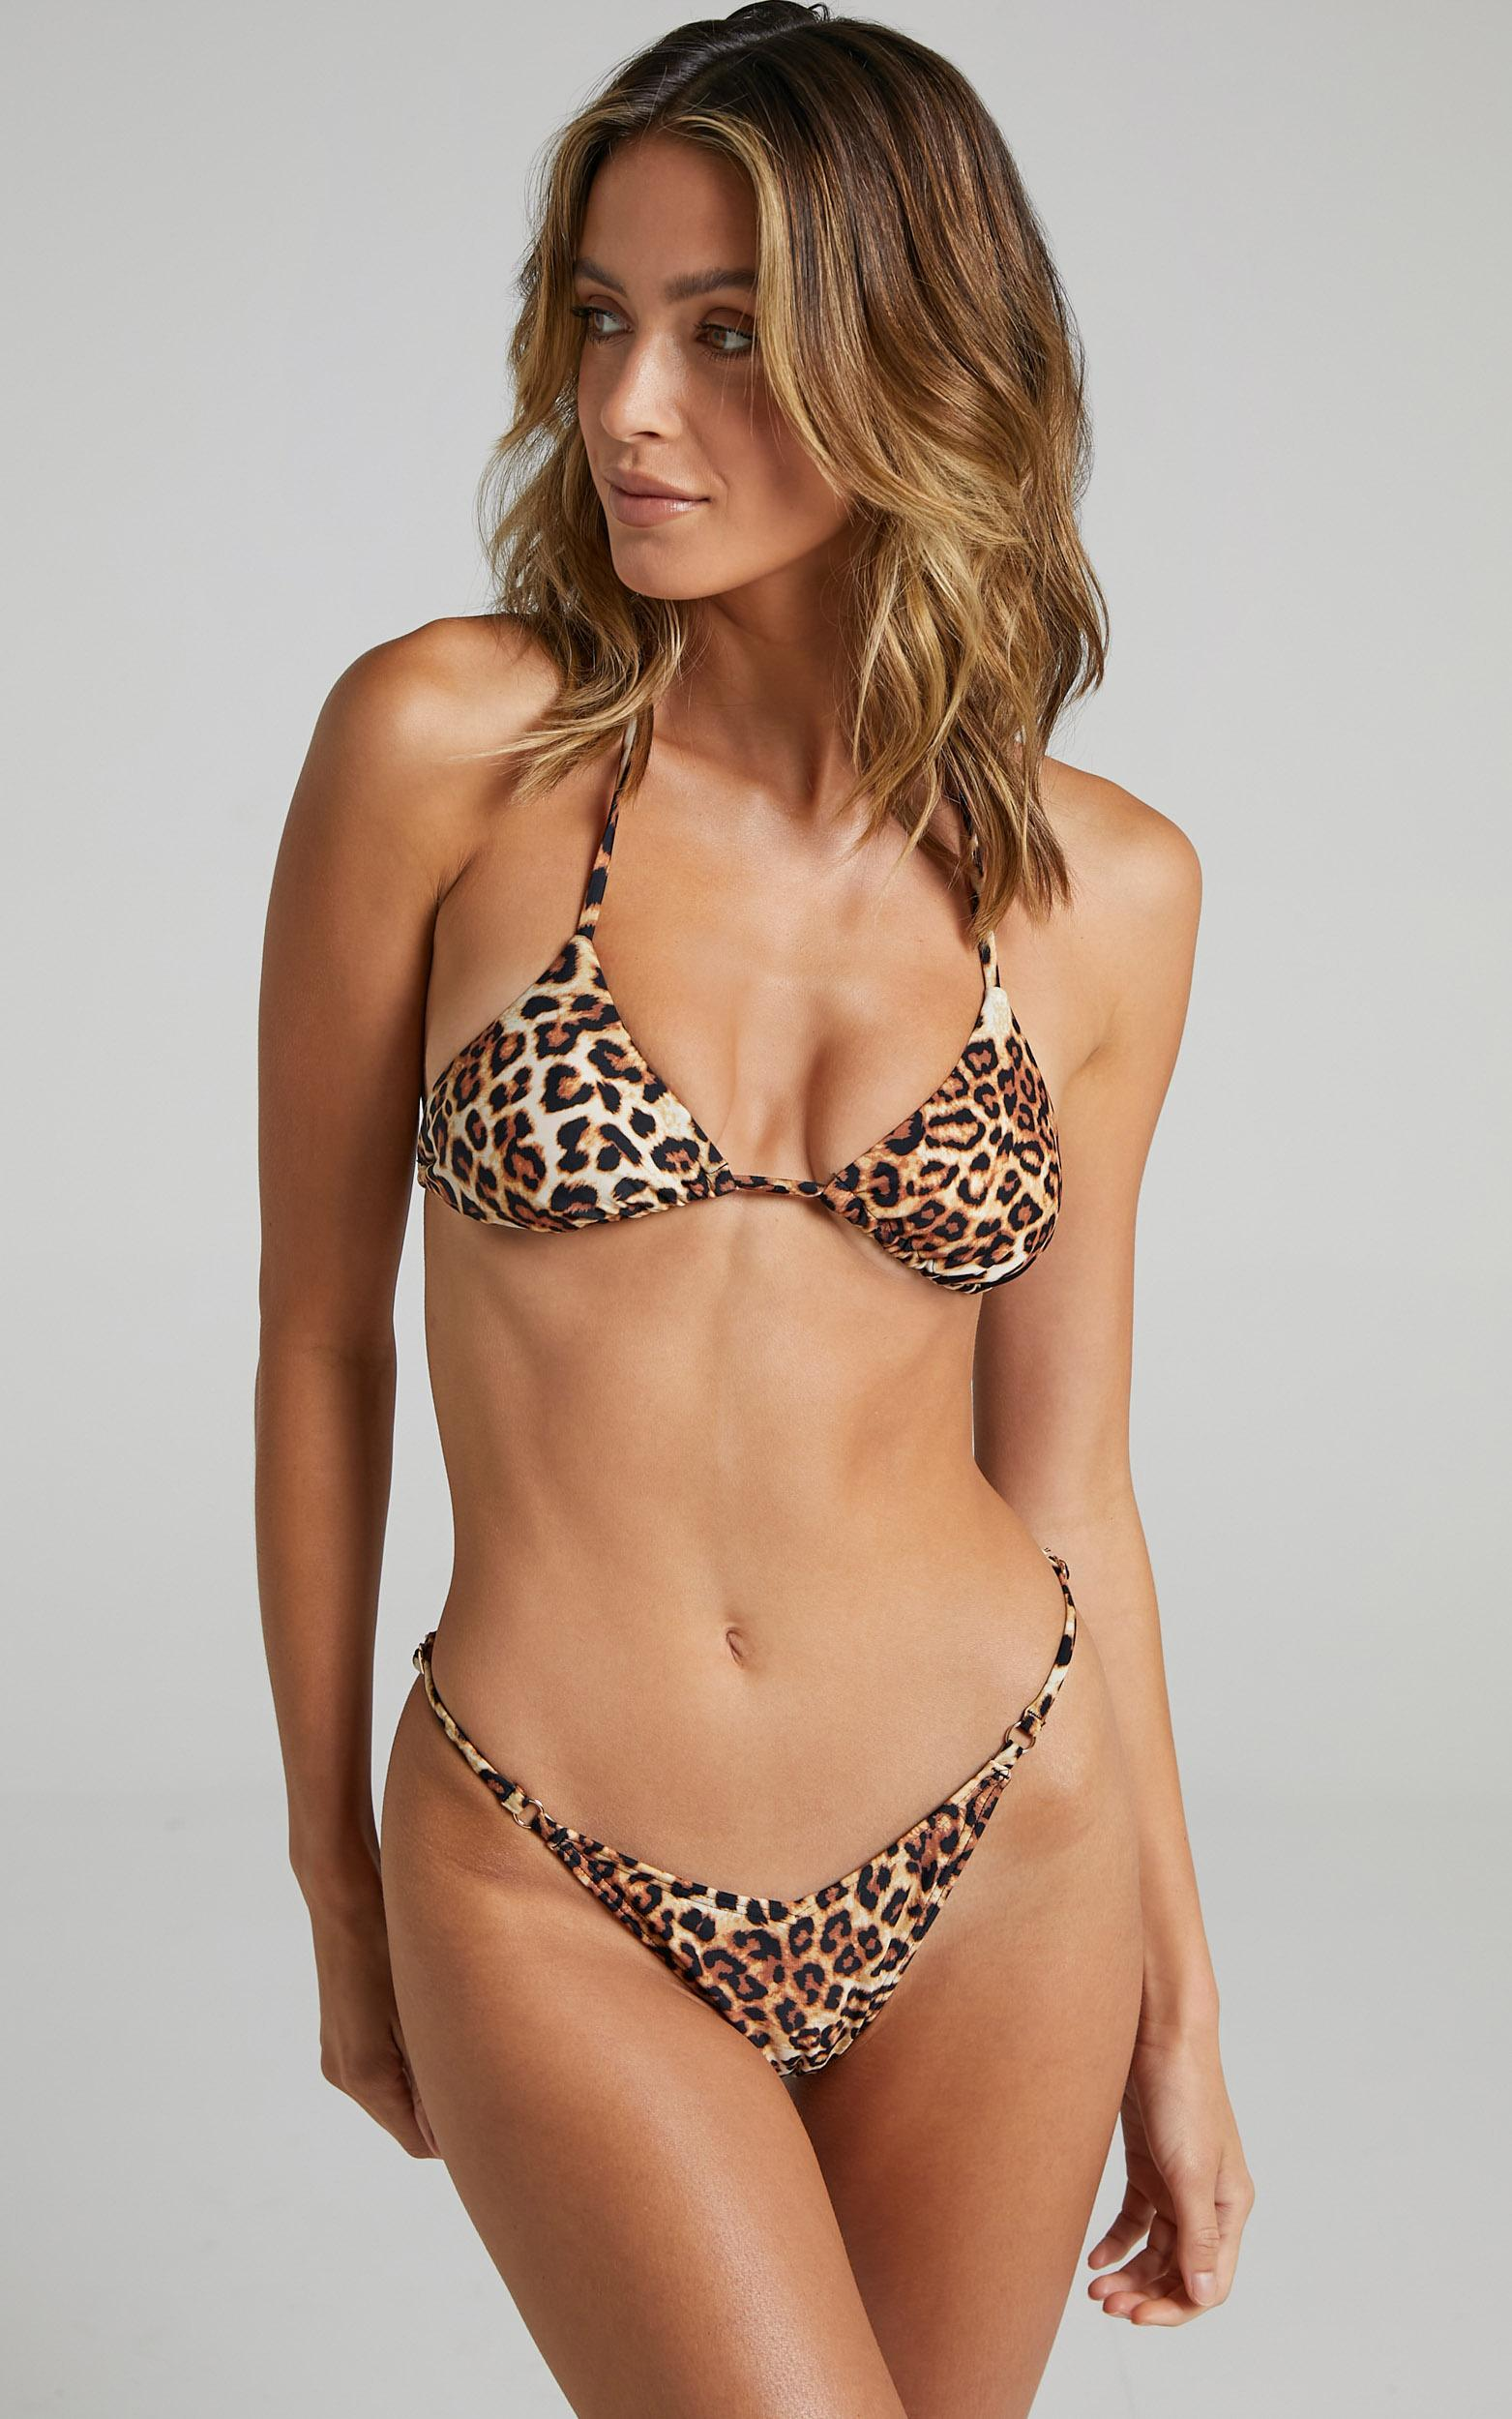 Twiin - Cindy Strappy Bikini Bottoms in Leopard - XS, Brown, hi-res image number null